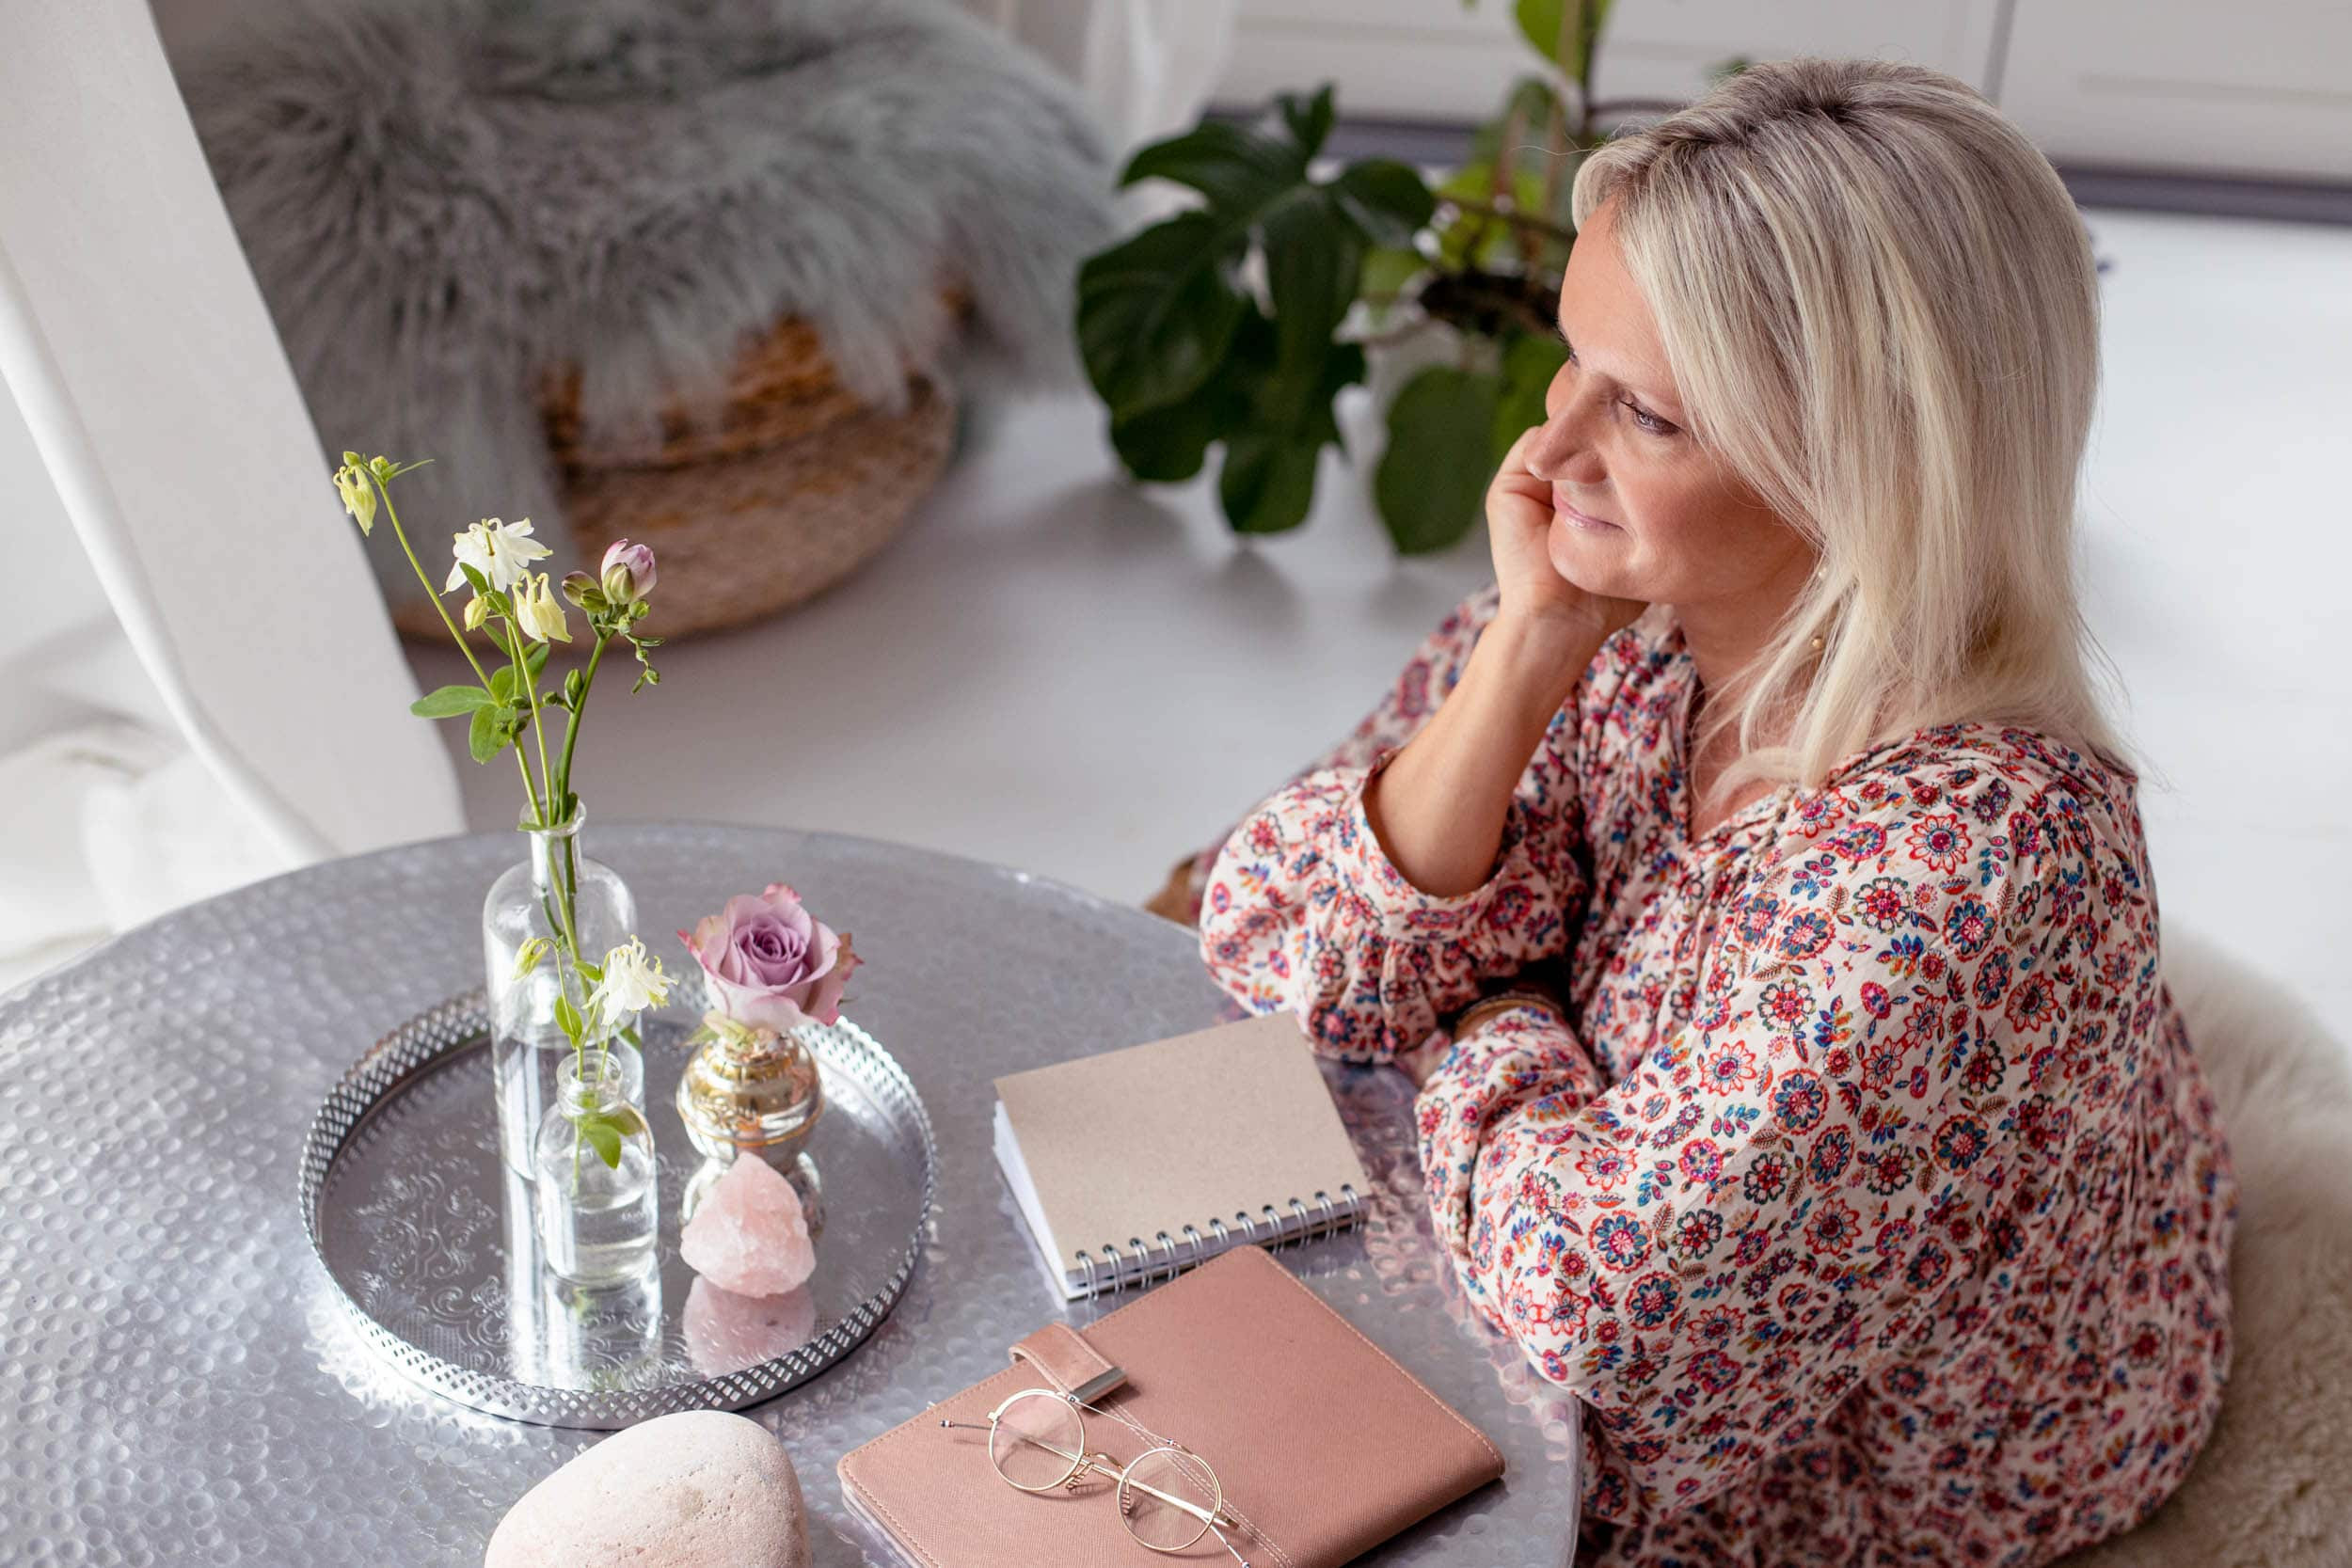 beingful terapeut uddannelse Odense - terapeutuddannelse Fyn - psykoterapeutuddannelse Fyn - psykoterapeut uddannelse Odense - psykoterapeut uddannelse online